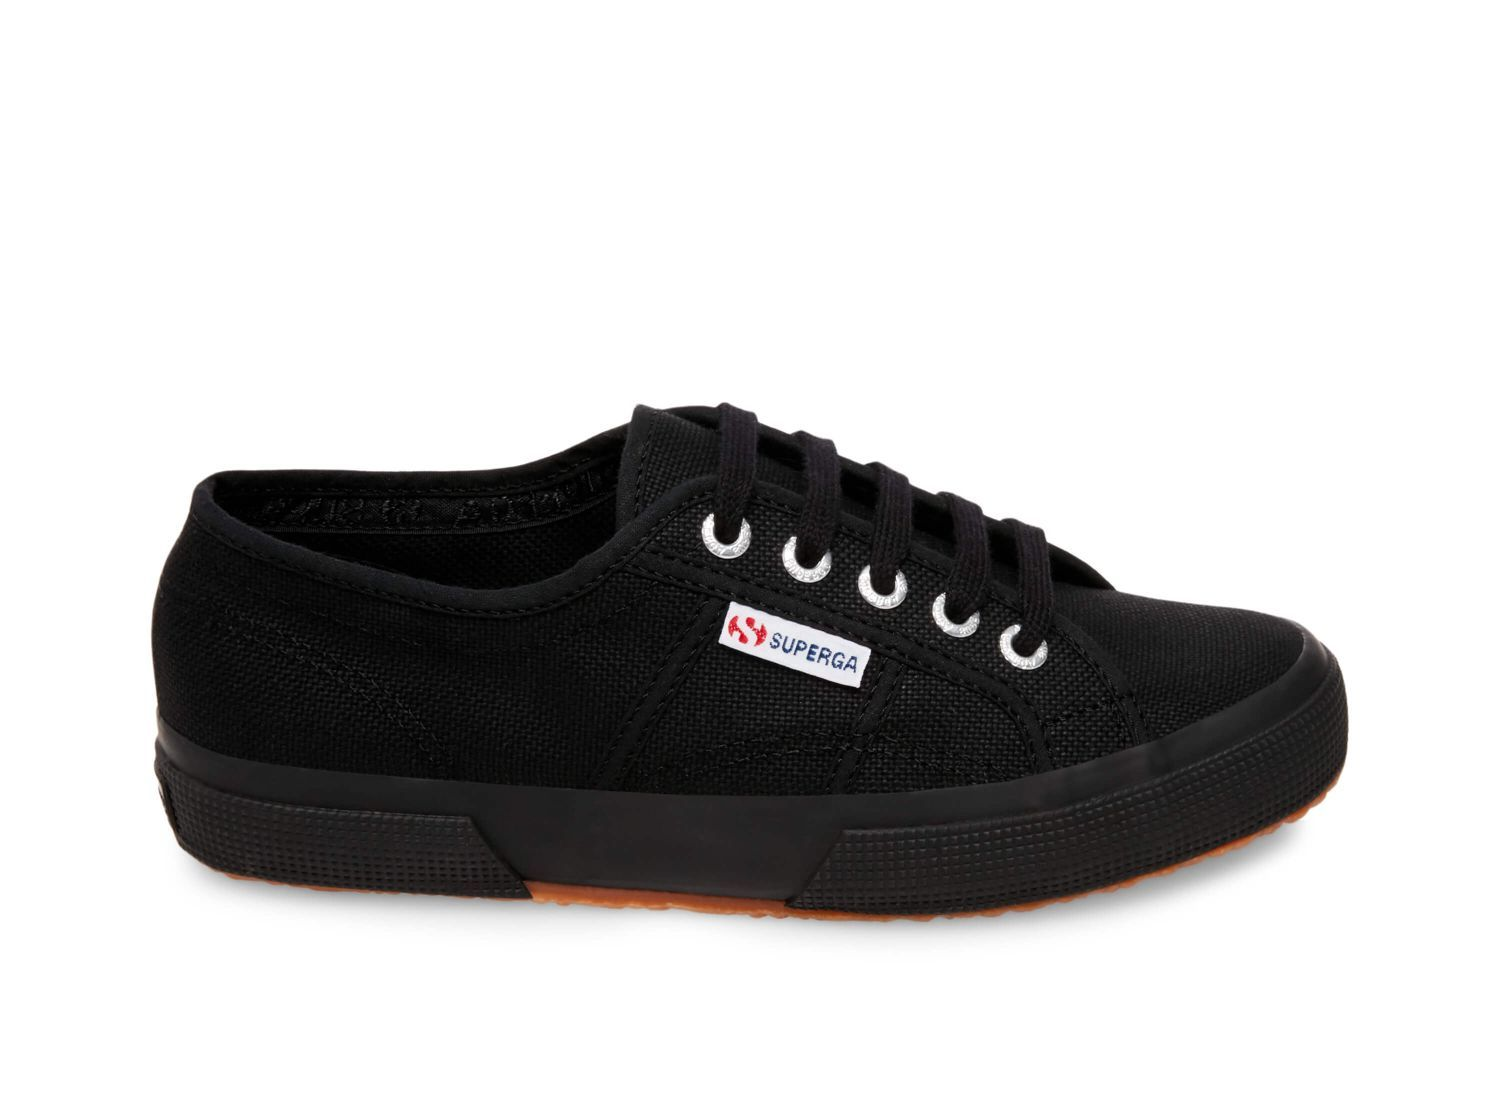 Superga 2750 Cotu Classic - Full Black